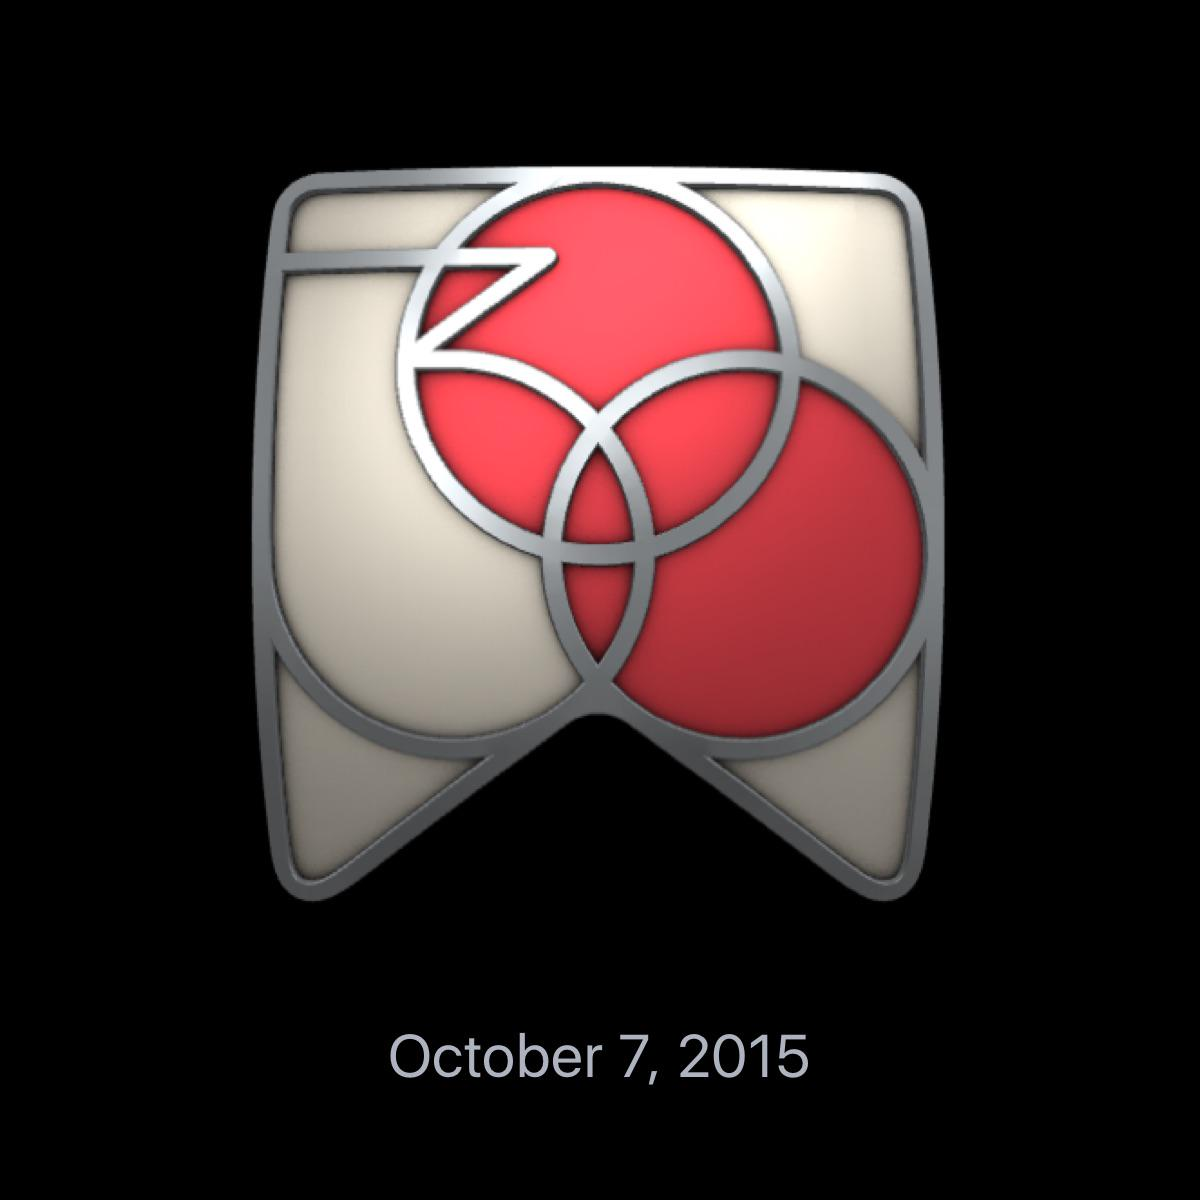 I tripled my daily Move goal on my #AppleWatch. http://t.co/qaSkTMsTzi